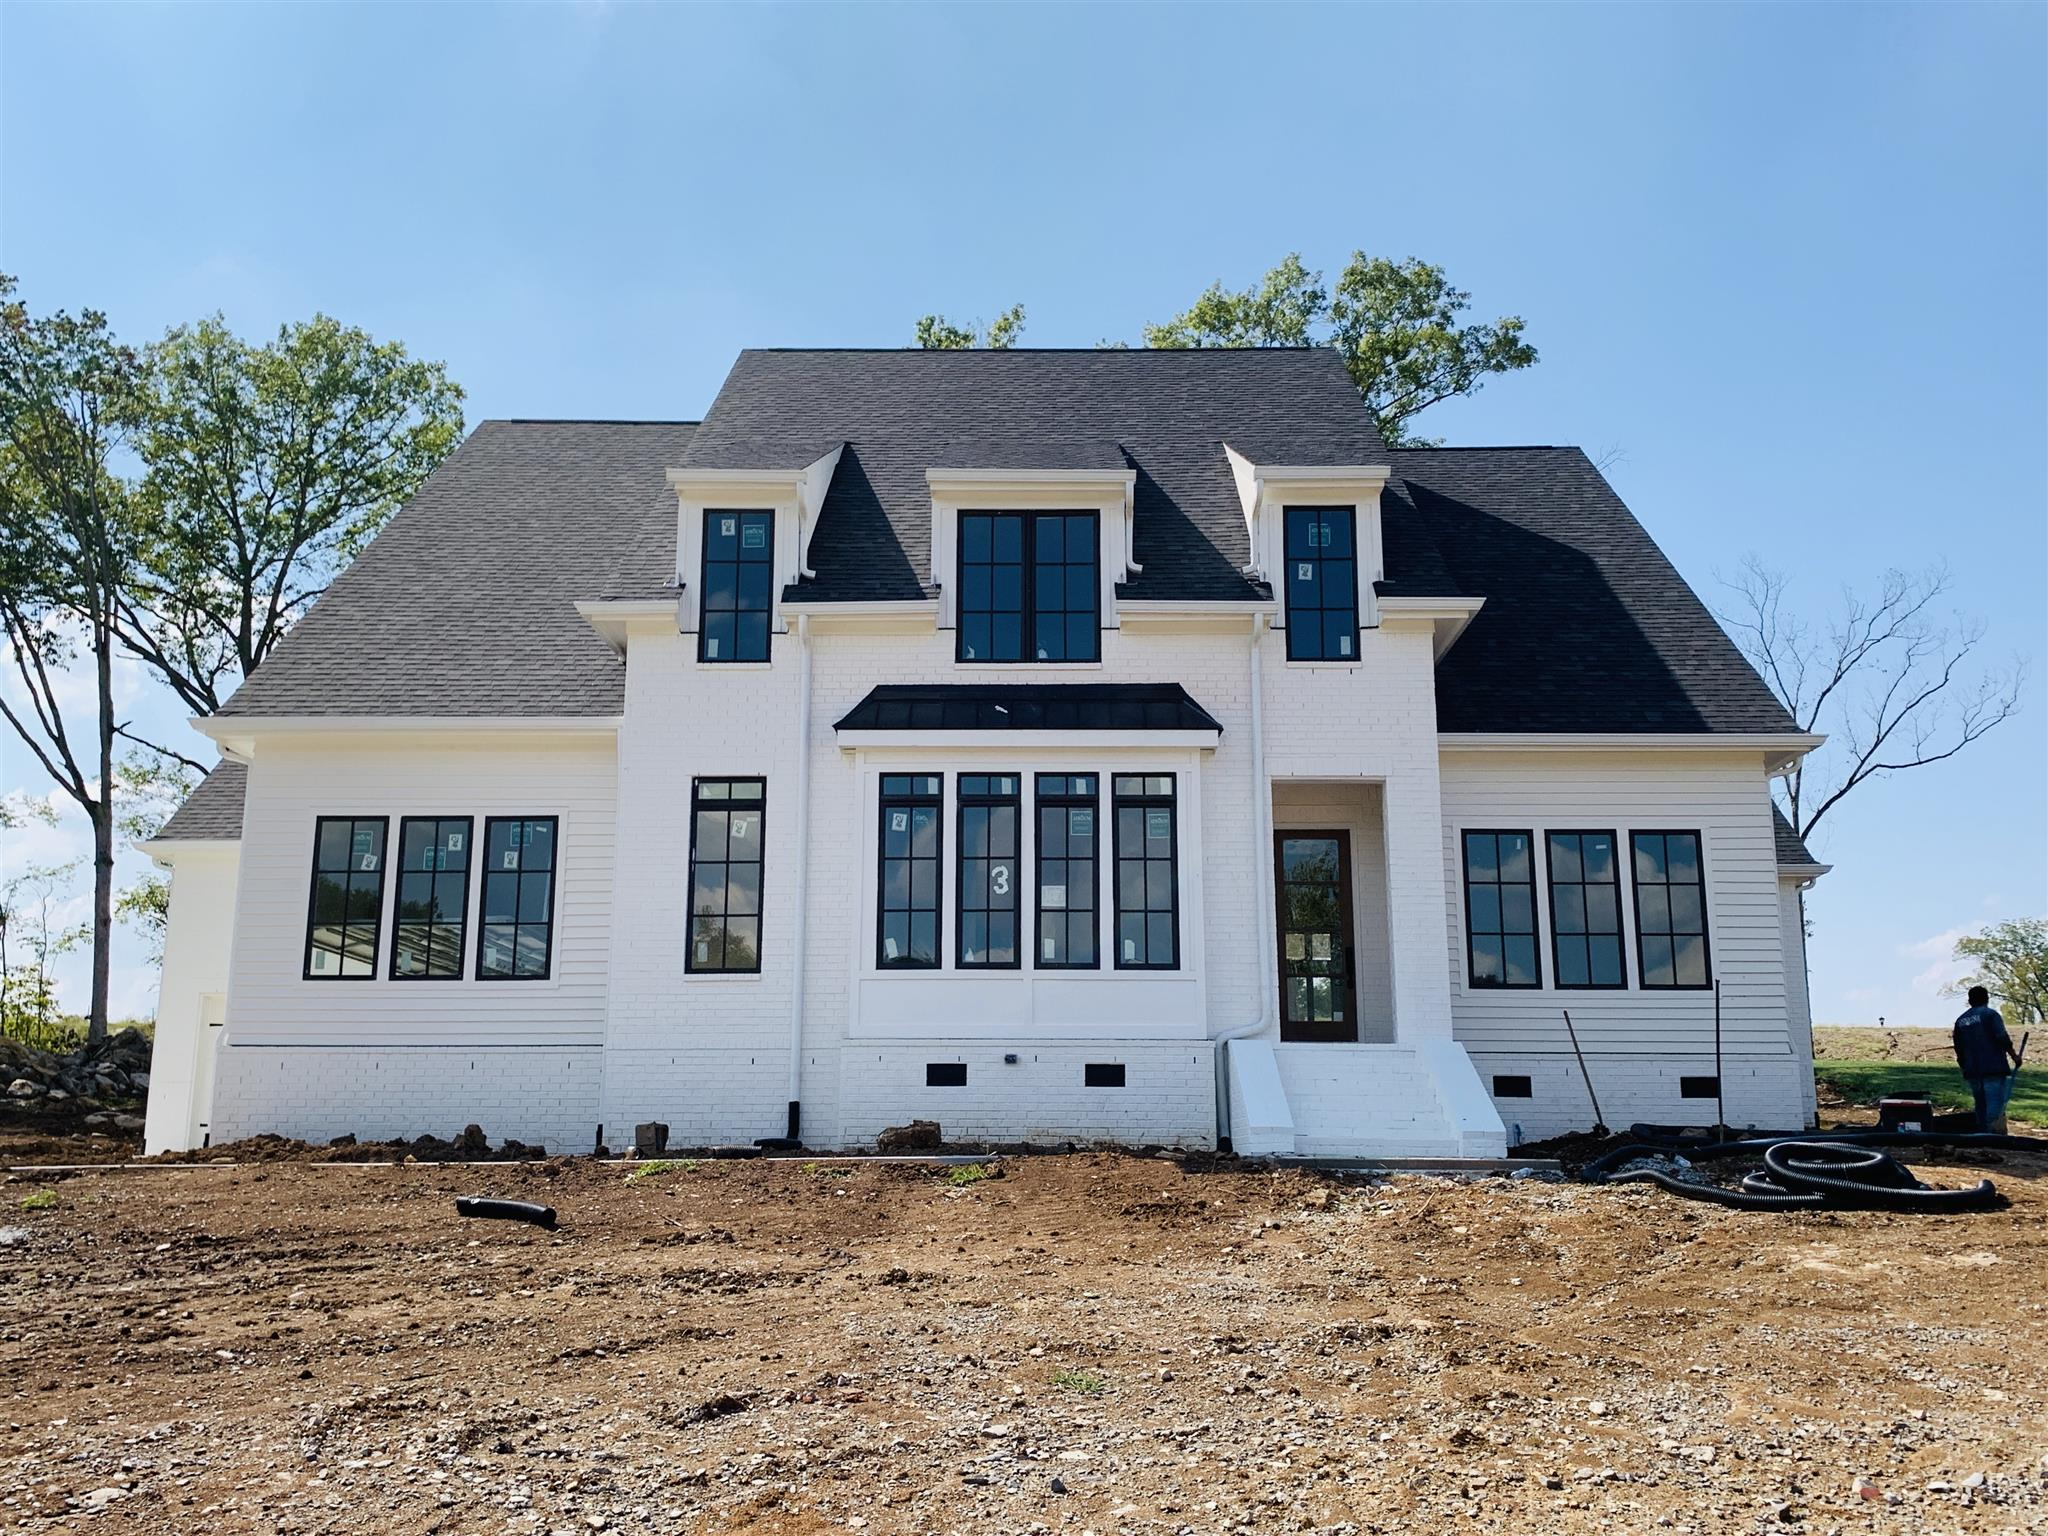 108 Hadley Reserve Ct *Lot 3*, one of homes for sale in Nolensville